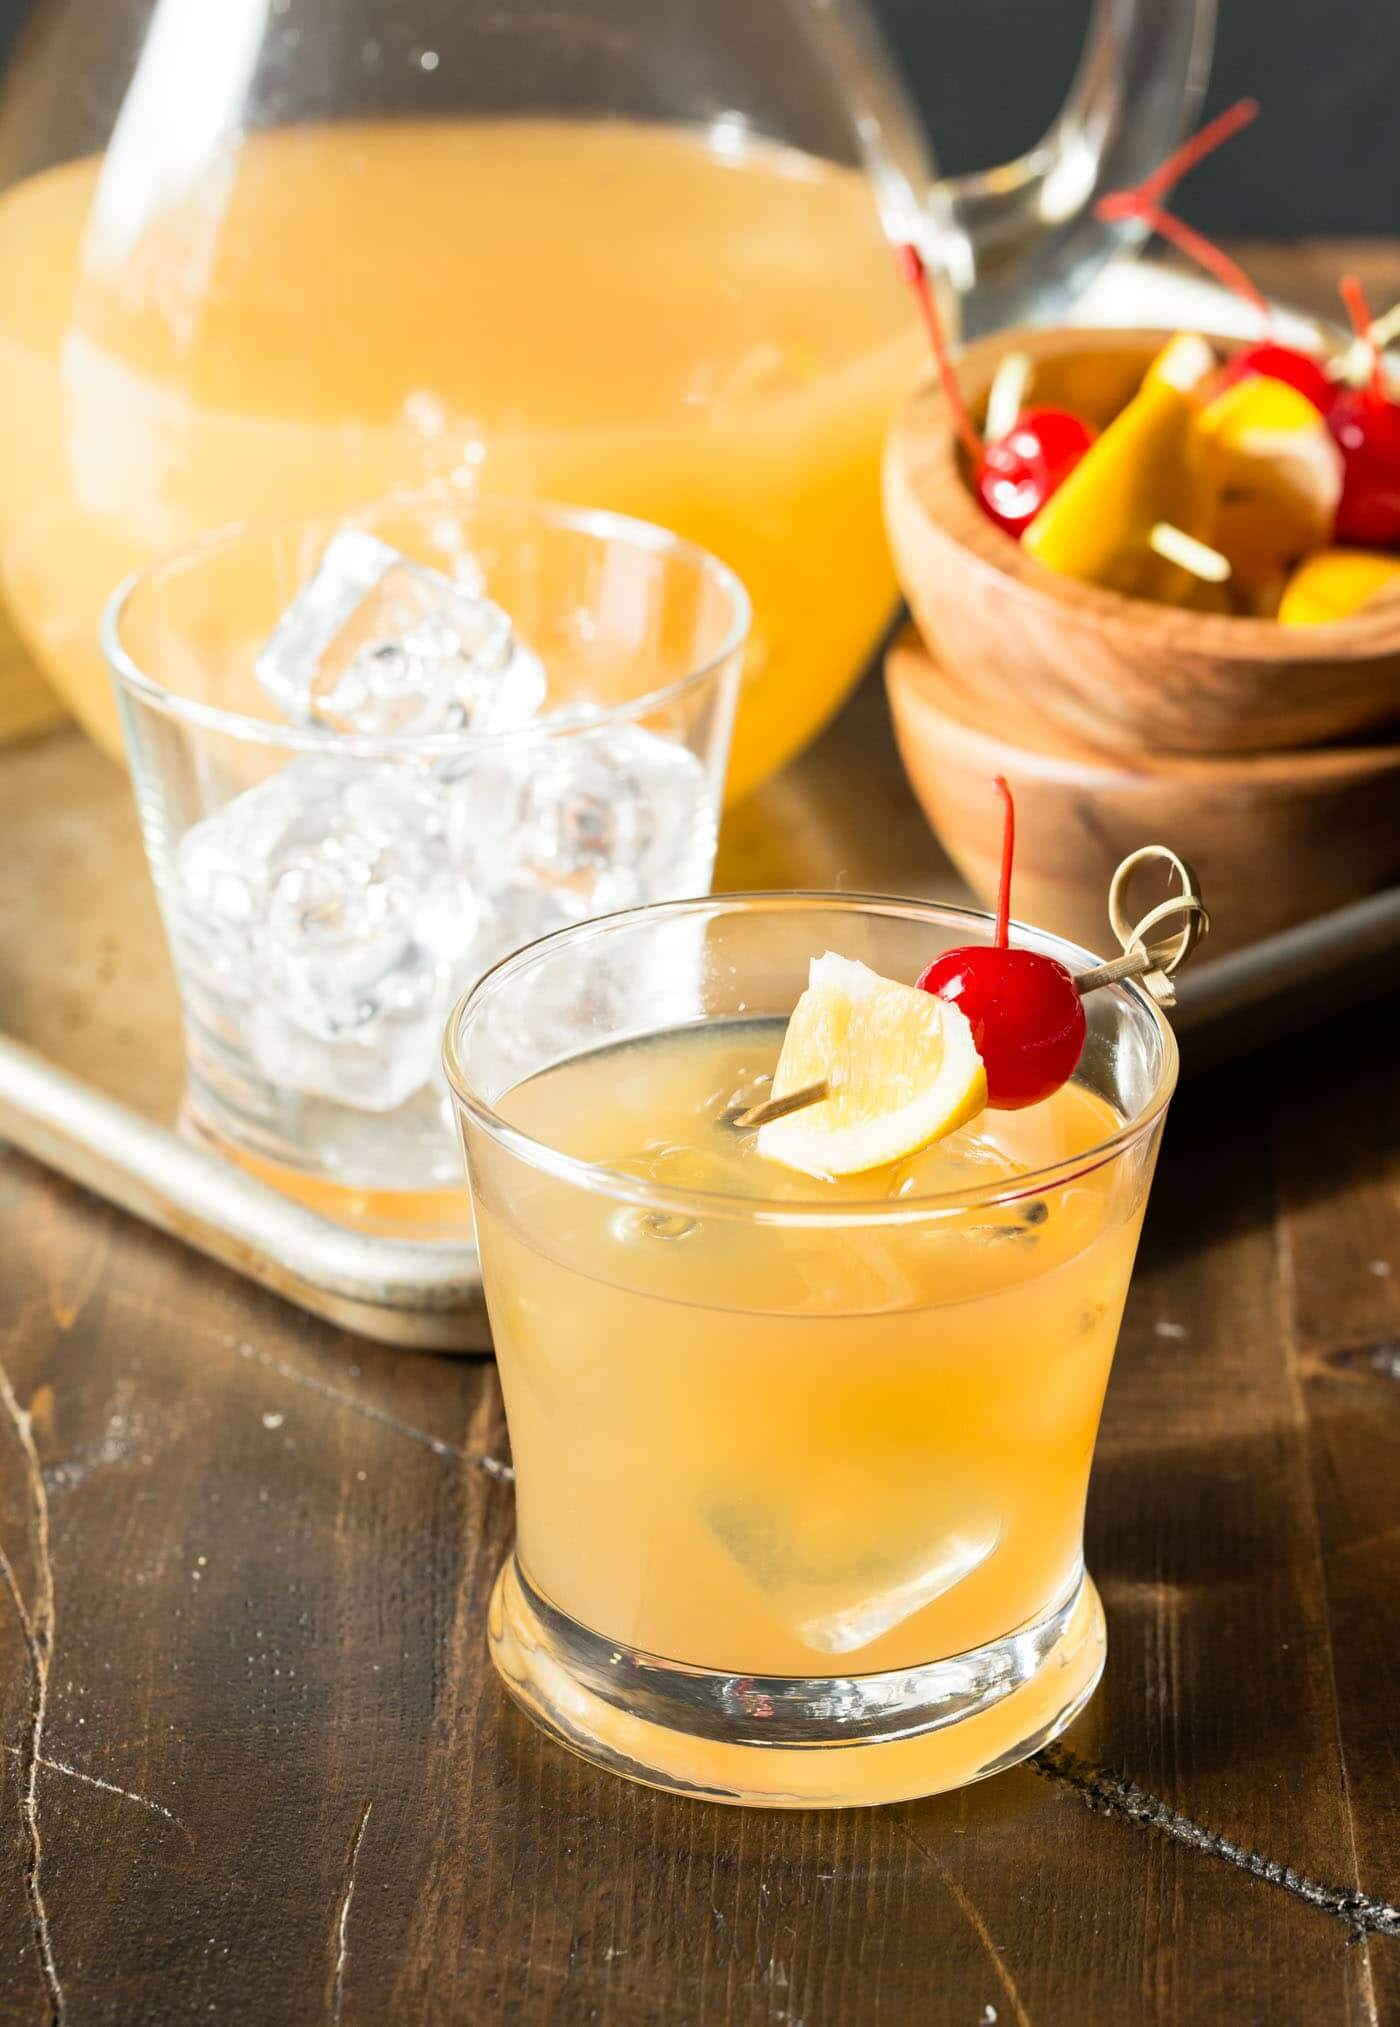 The only way to make a whiskey sour better? Add lemon